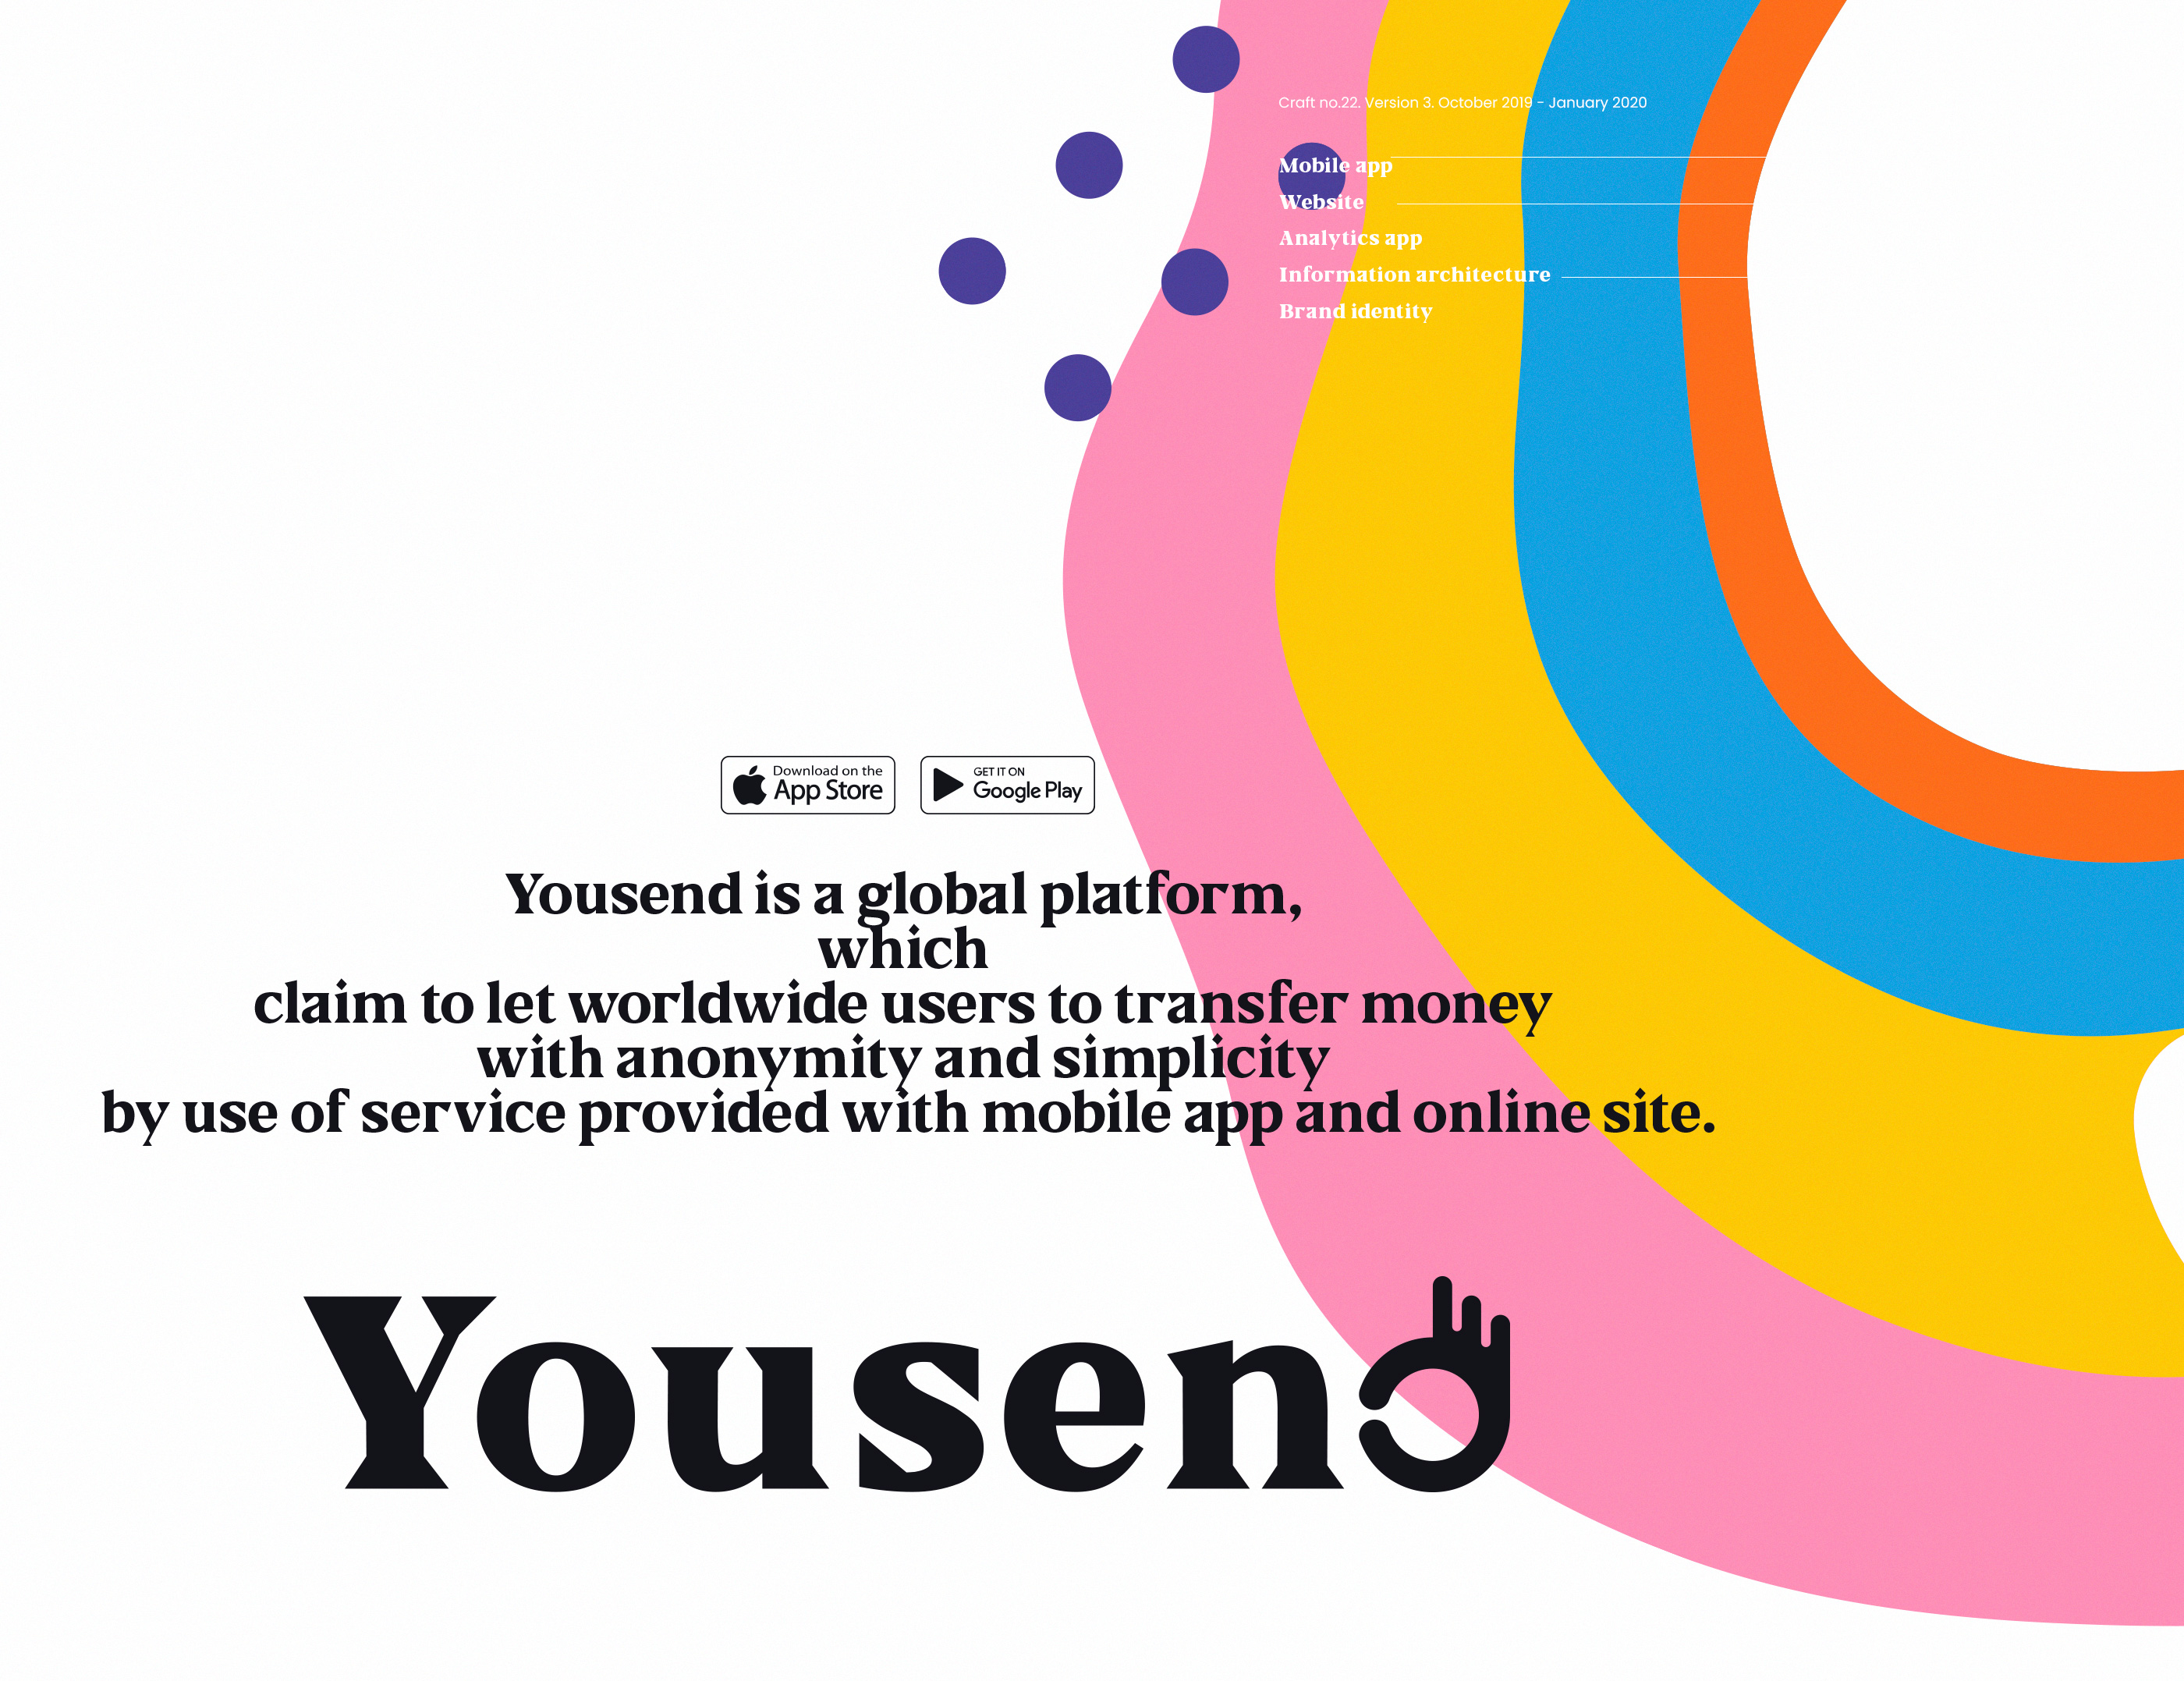 Yousend - money transfer app. More anonymity, less hassle way to transfer money.